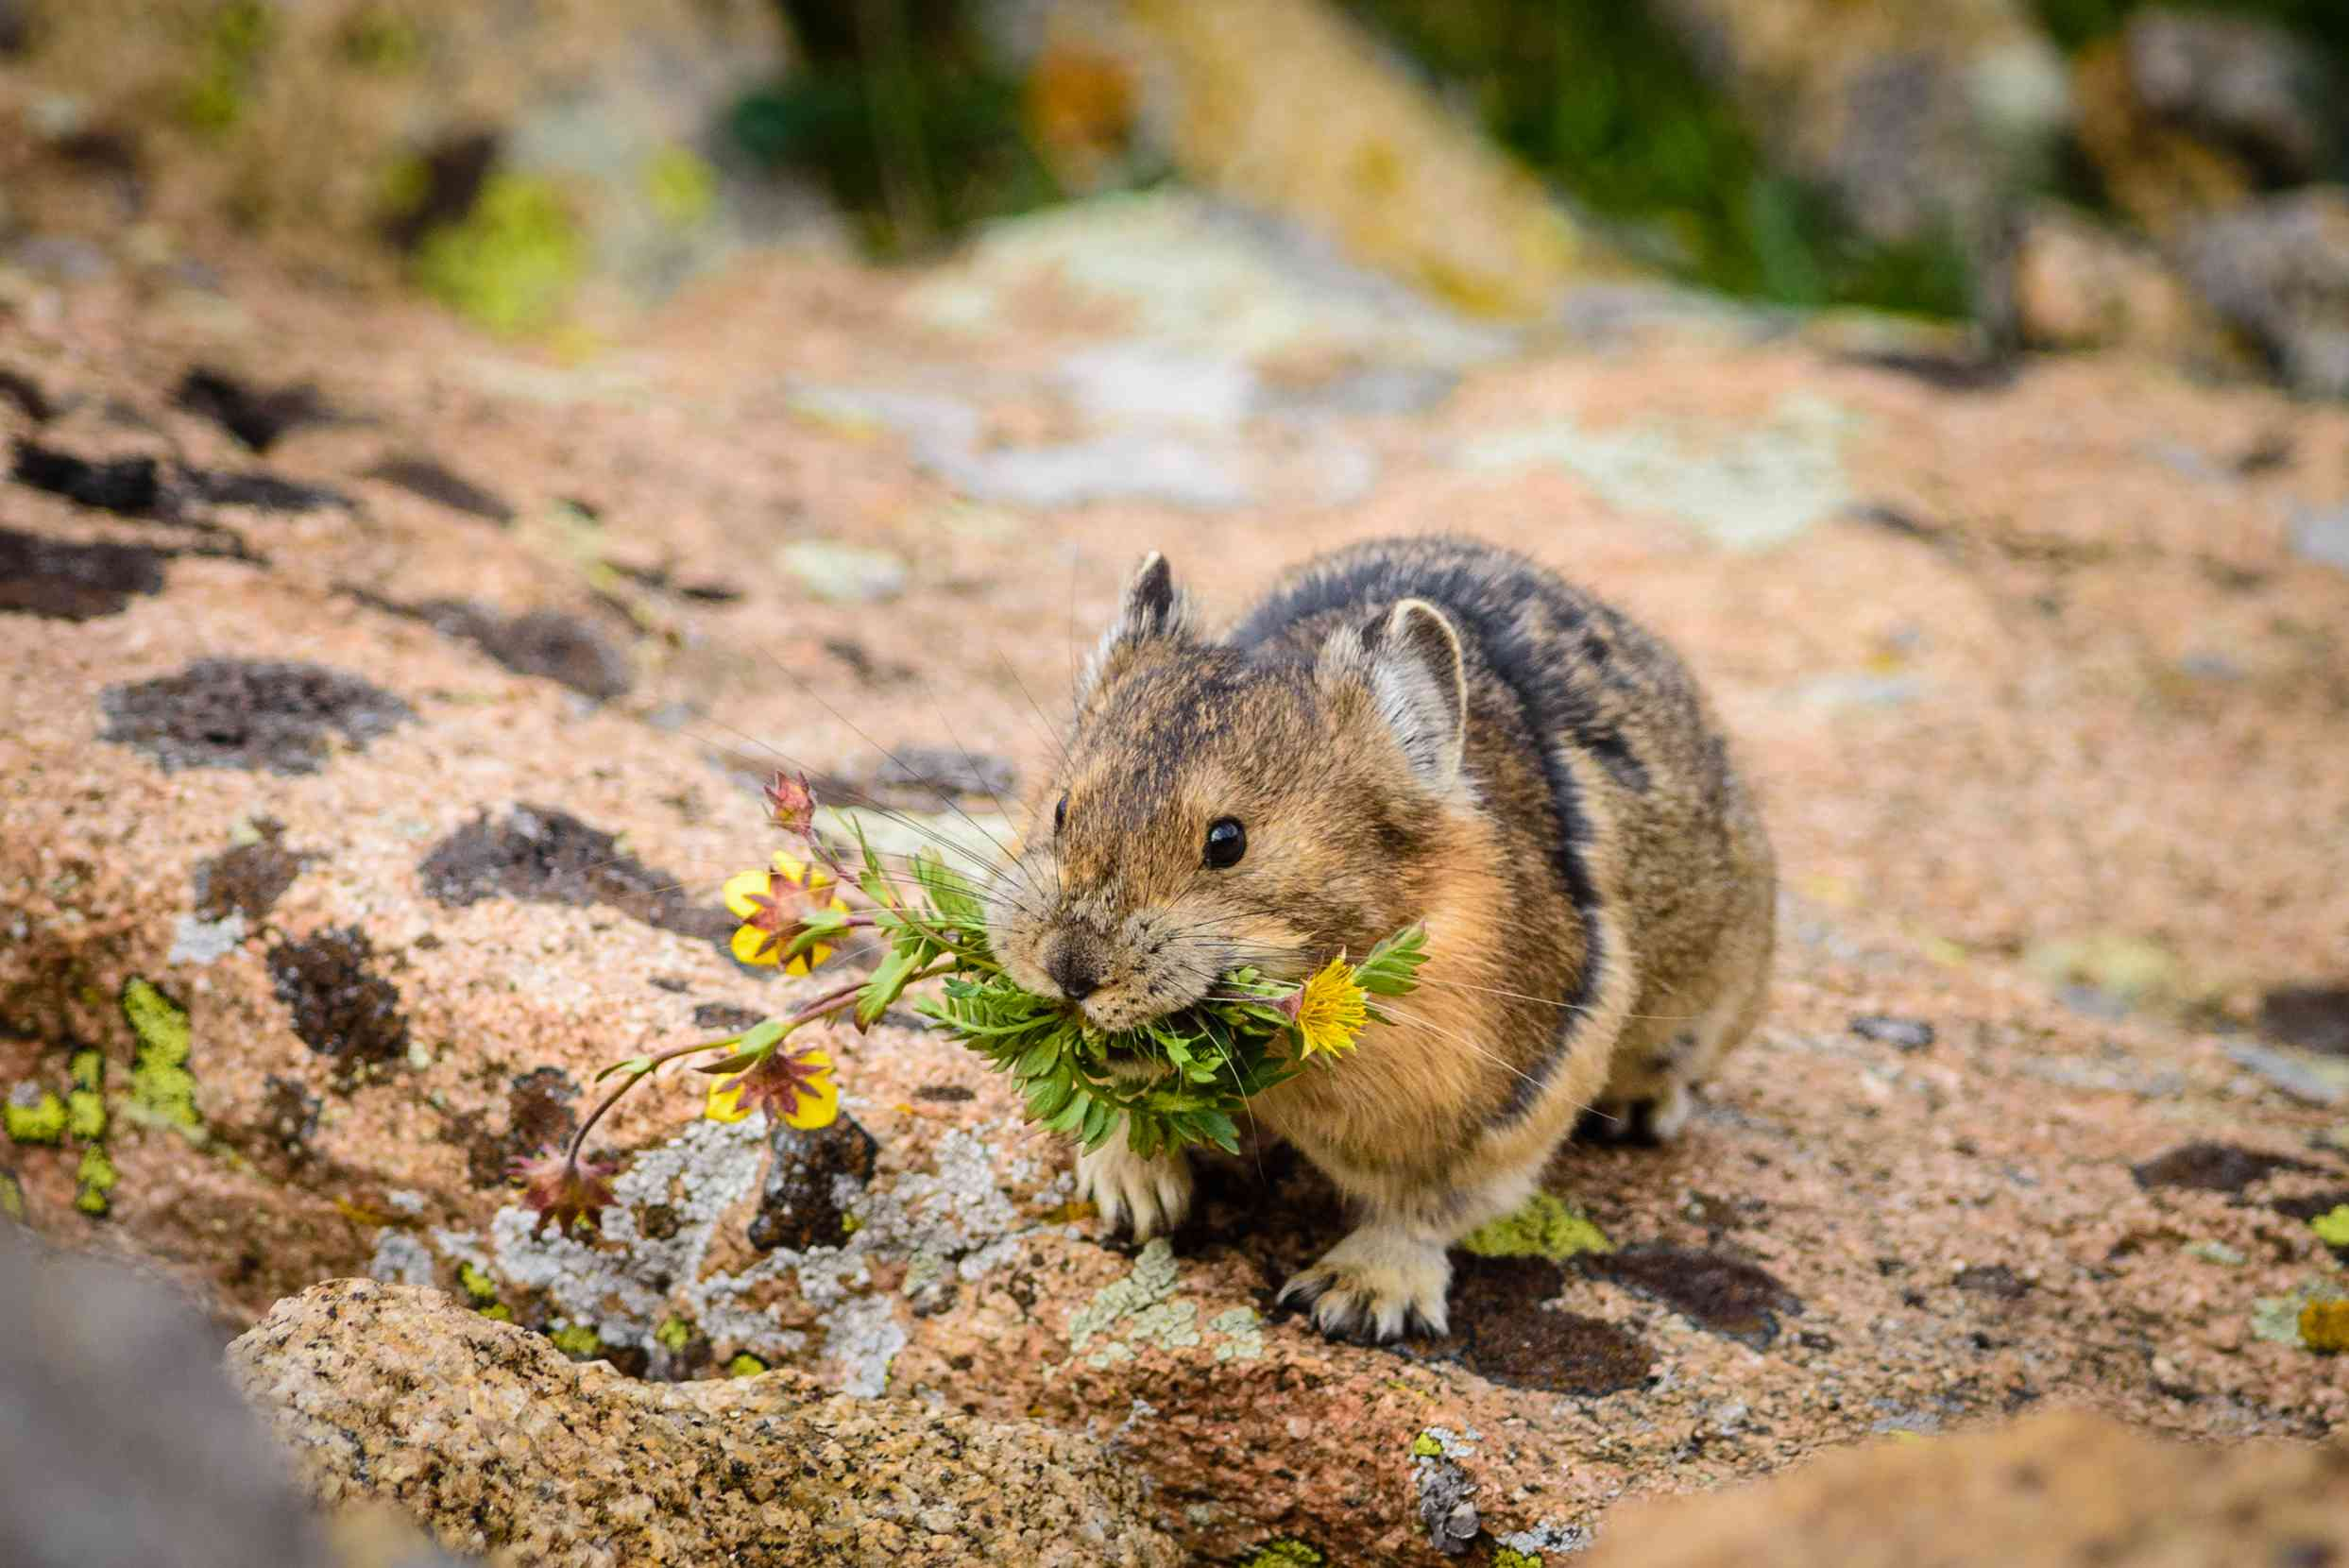 Pika with flowers in its mouth